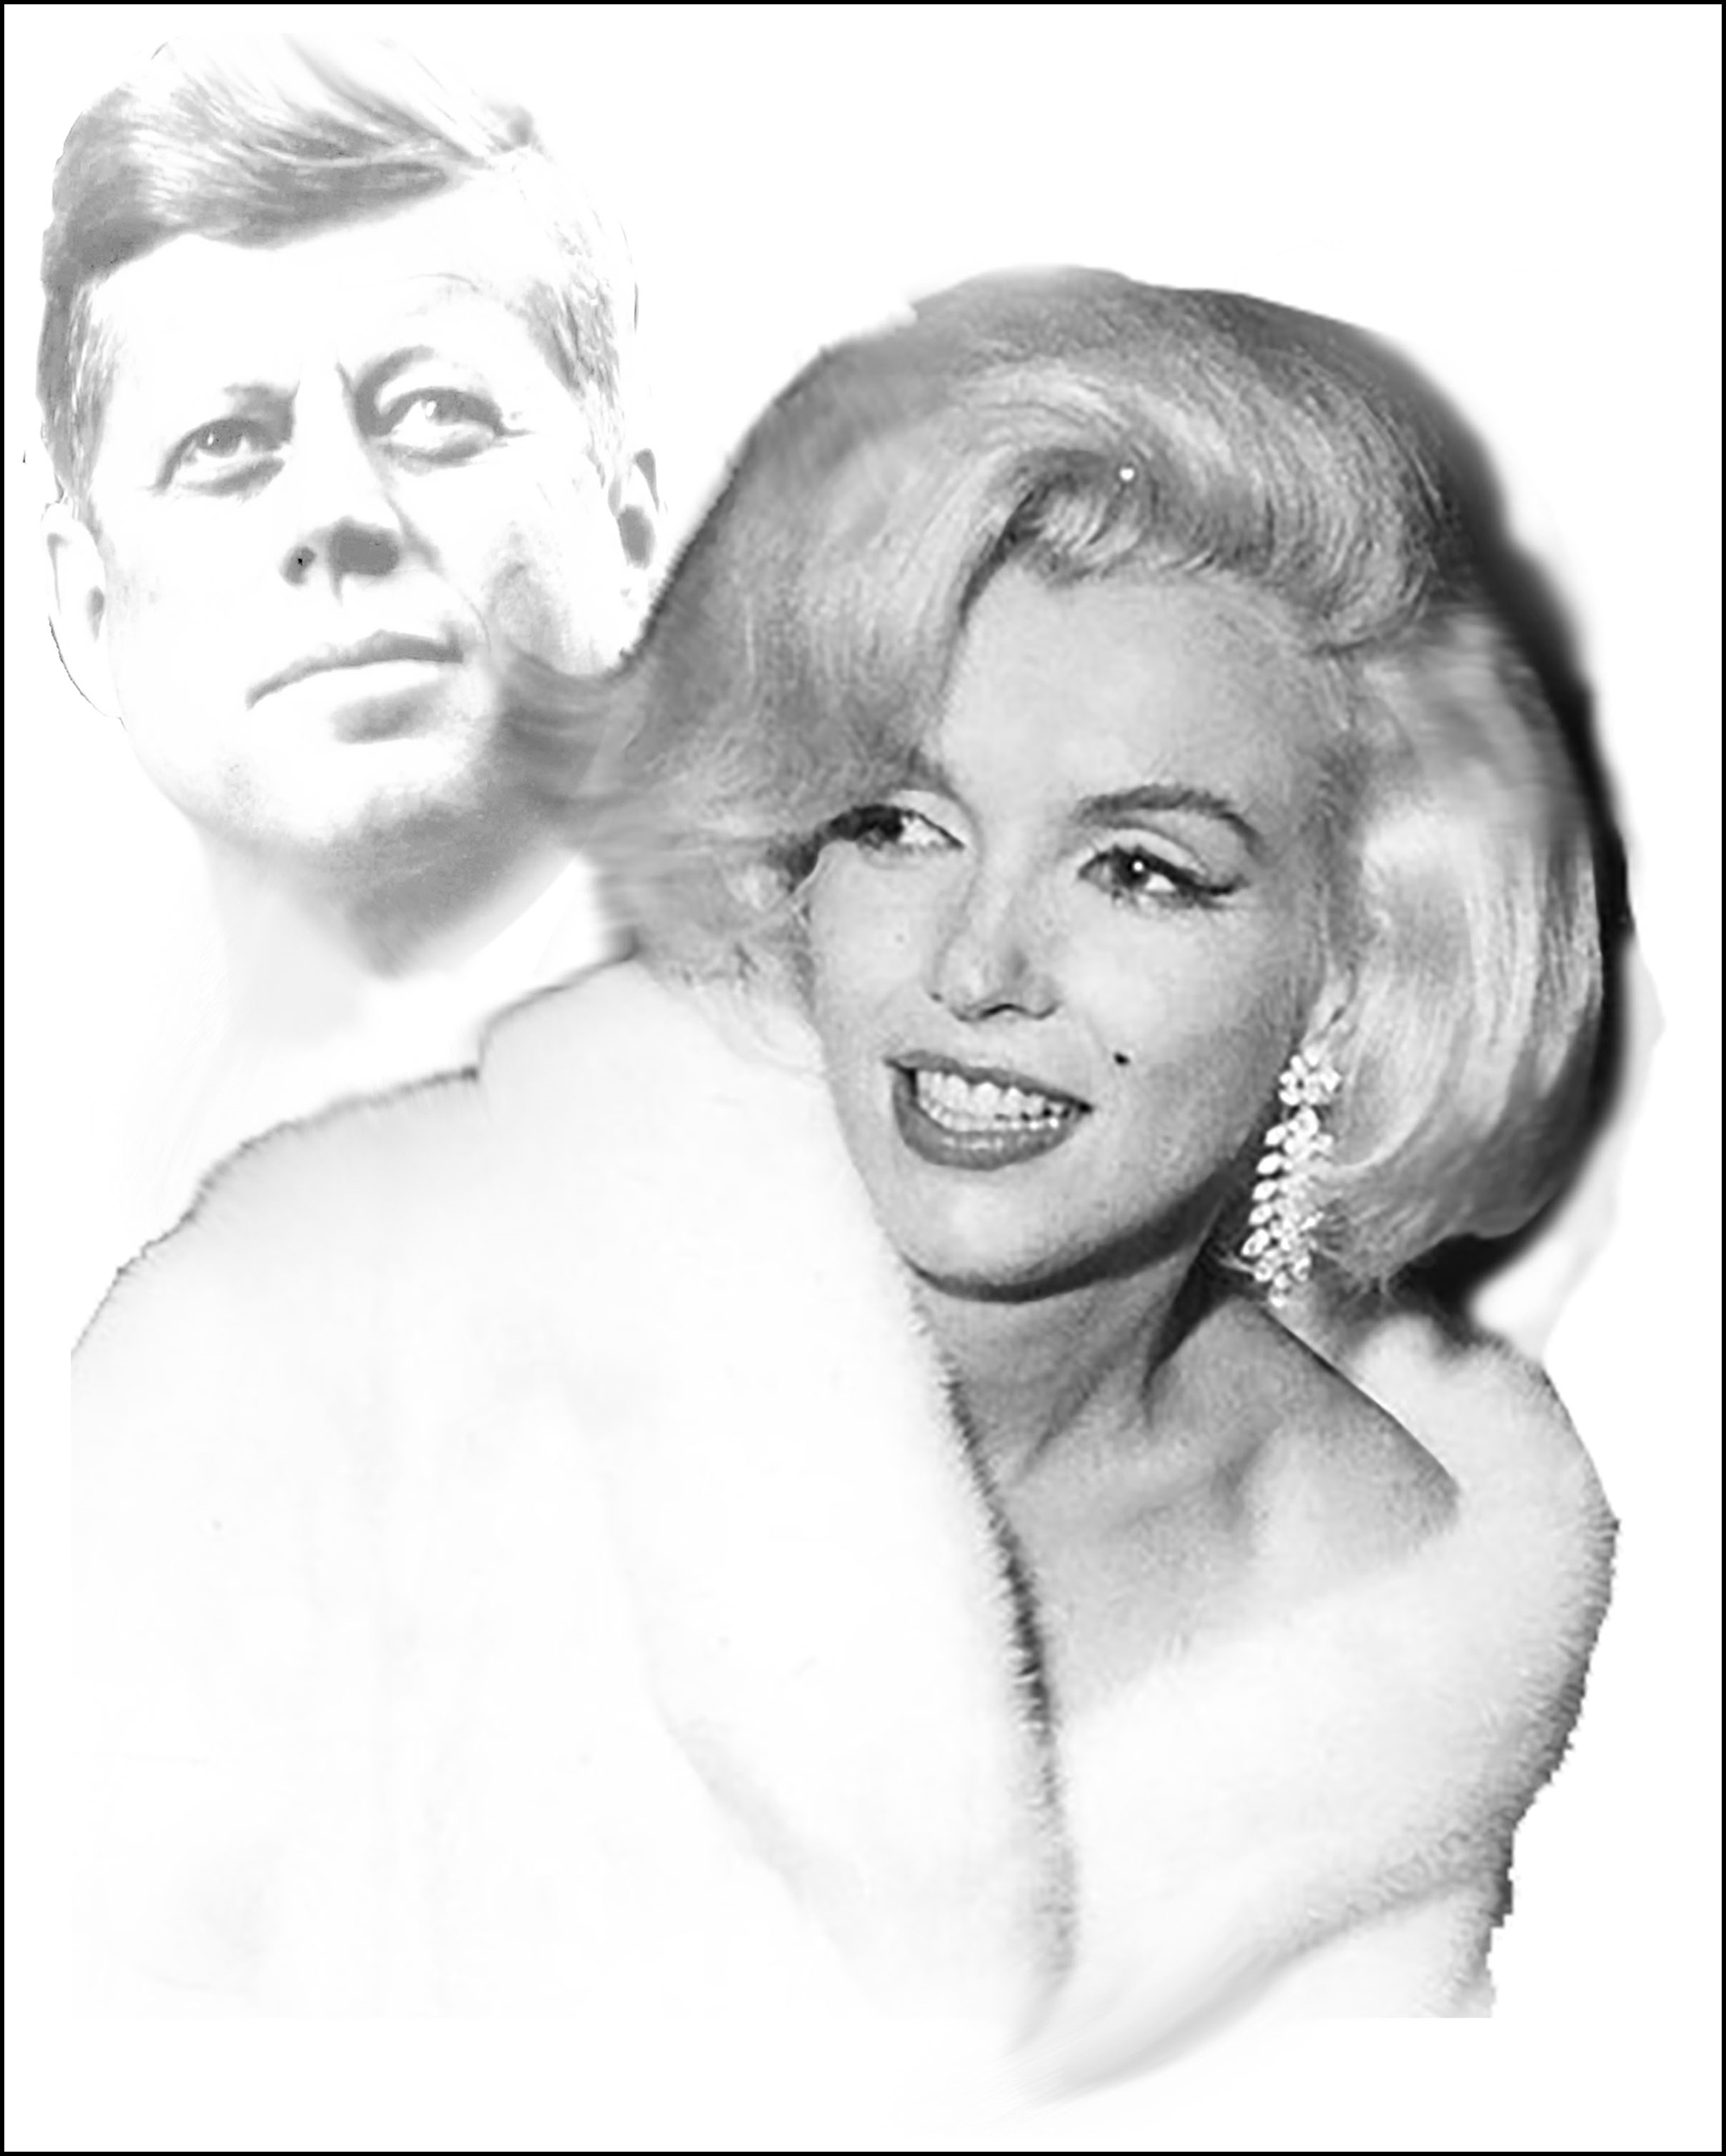 Marilyn and JFK Available as Commission by Bill Mack